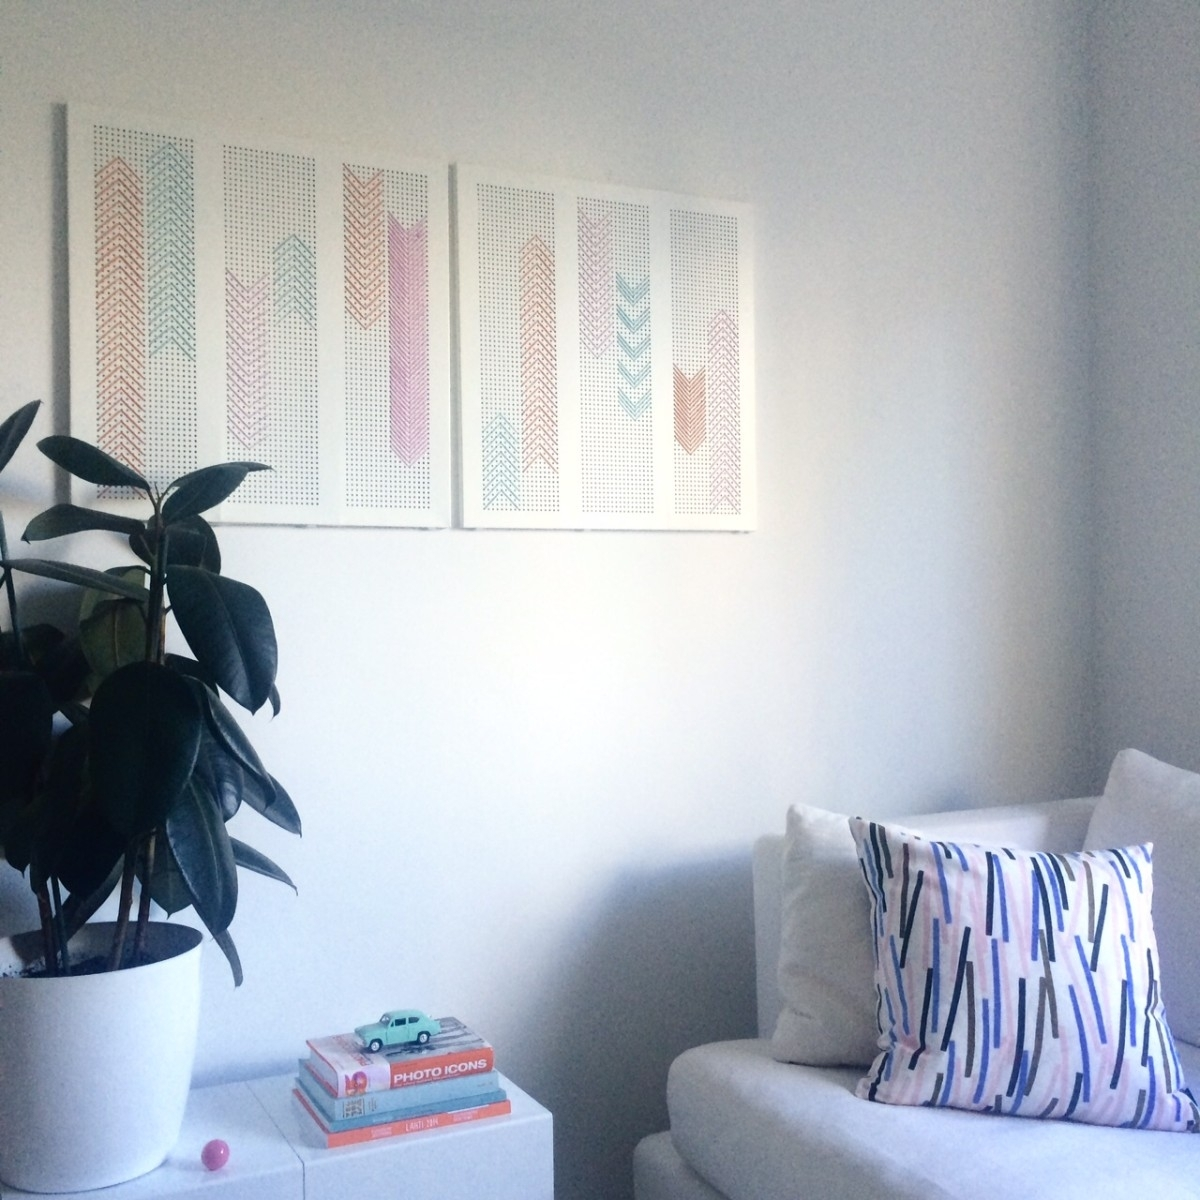 Broken Algot Shelf To Wall Art For Living Room - Ikea Hackers for Ikea Wall Art (Image 4 of 20)